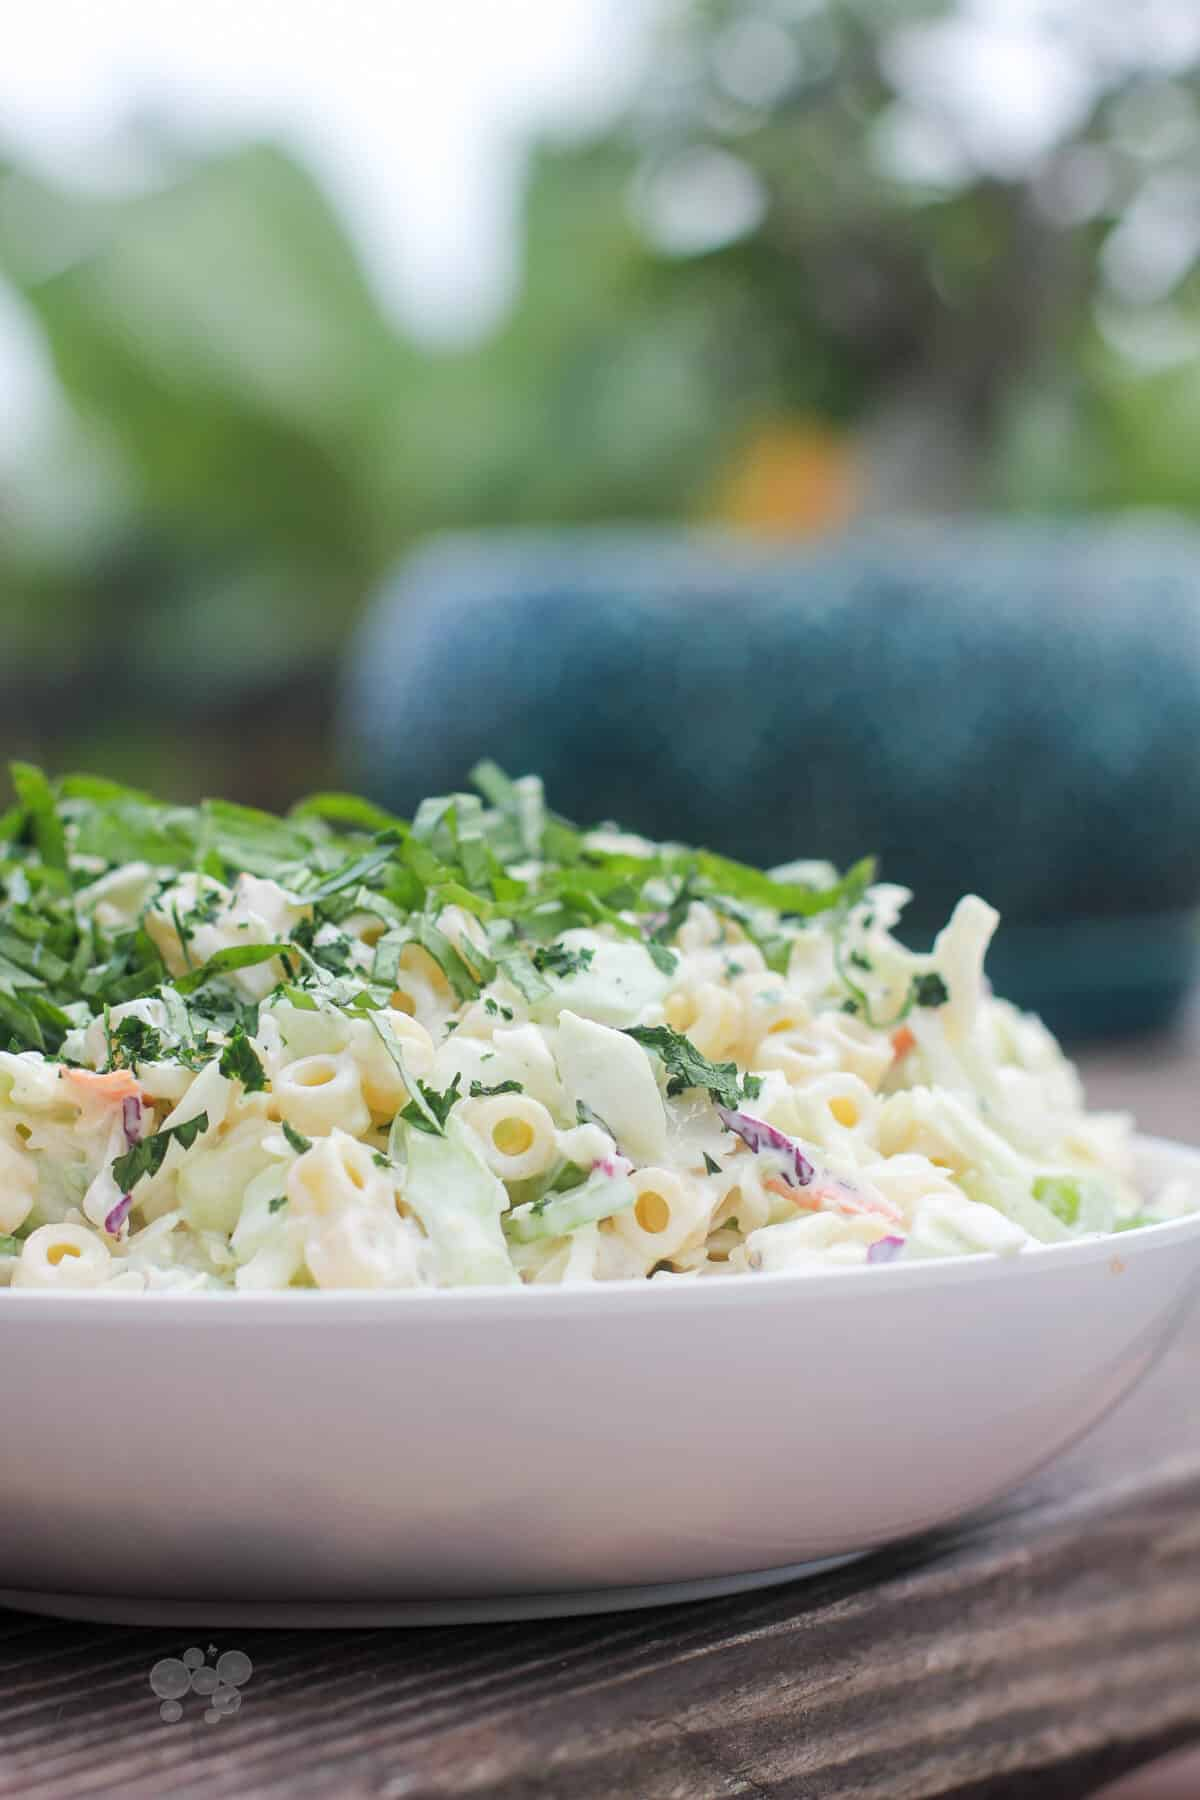 coleslaw pasta salad in white bowl, side view on wood table